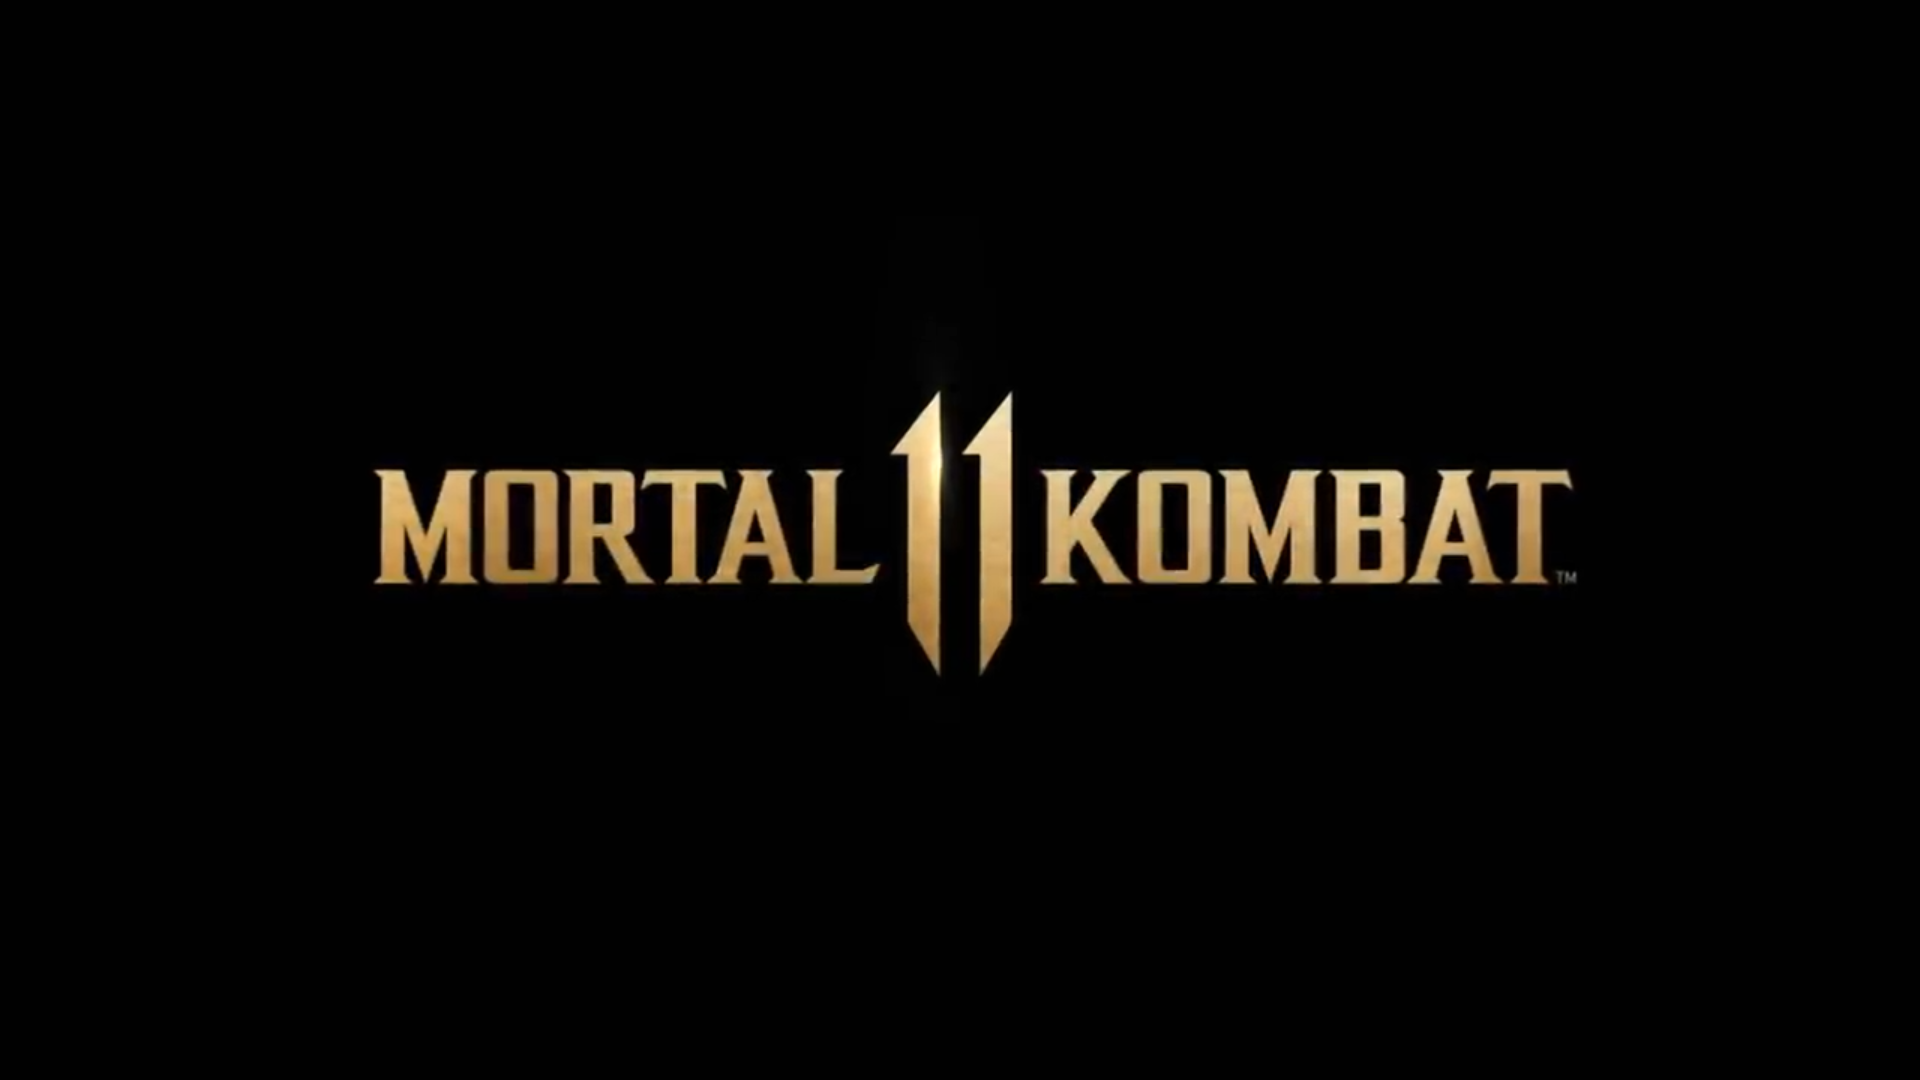 Mortal Kombat 11 Trailer Song